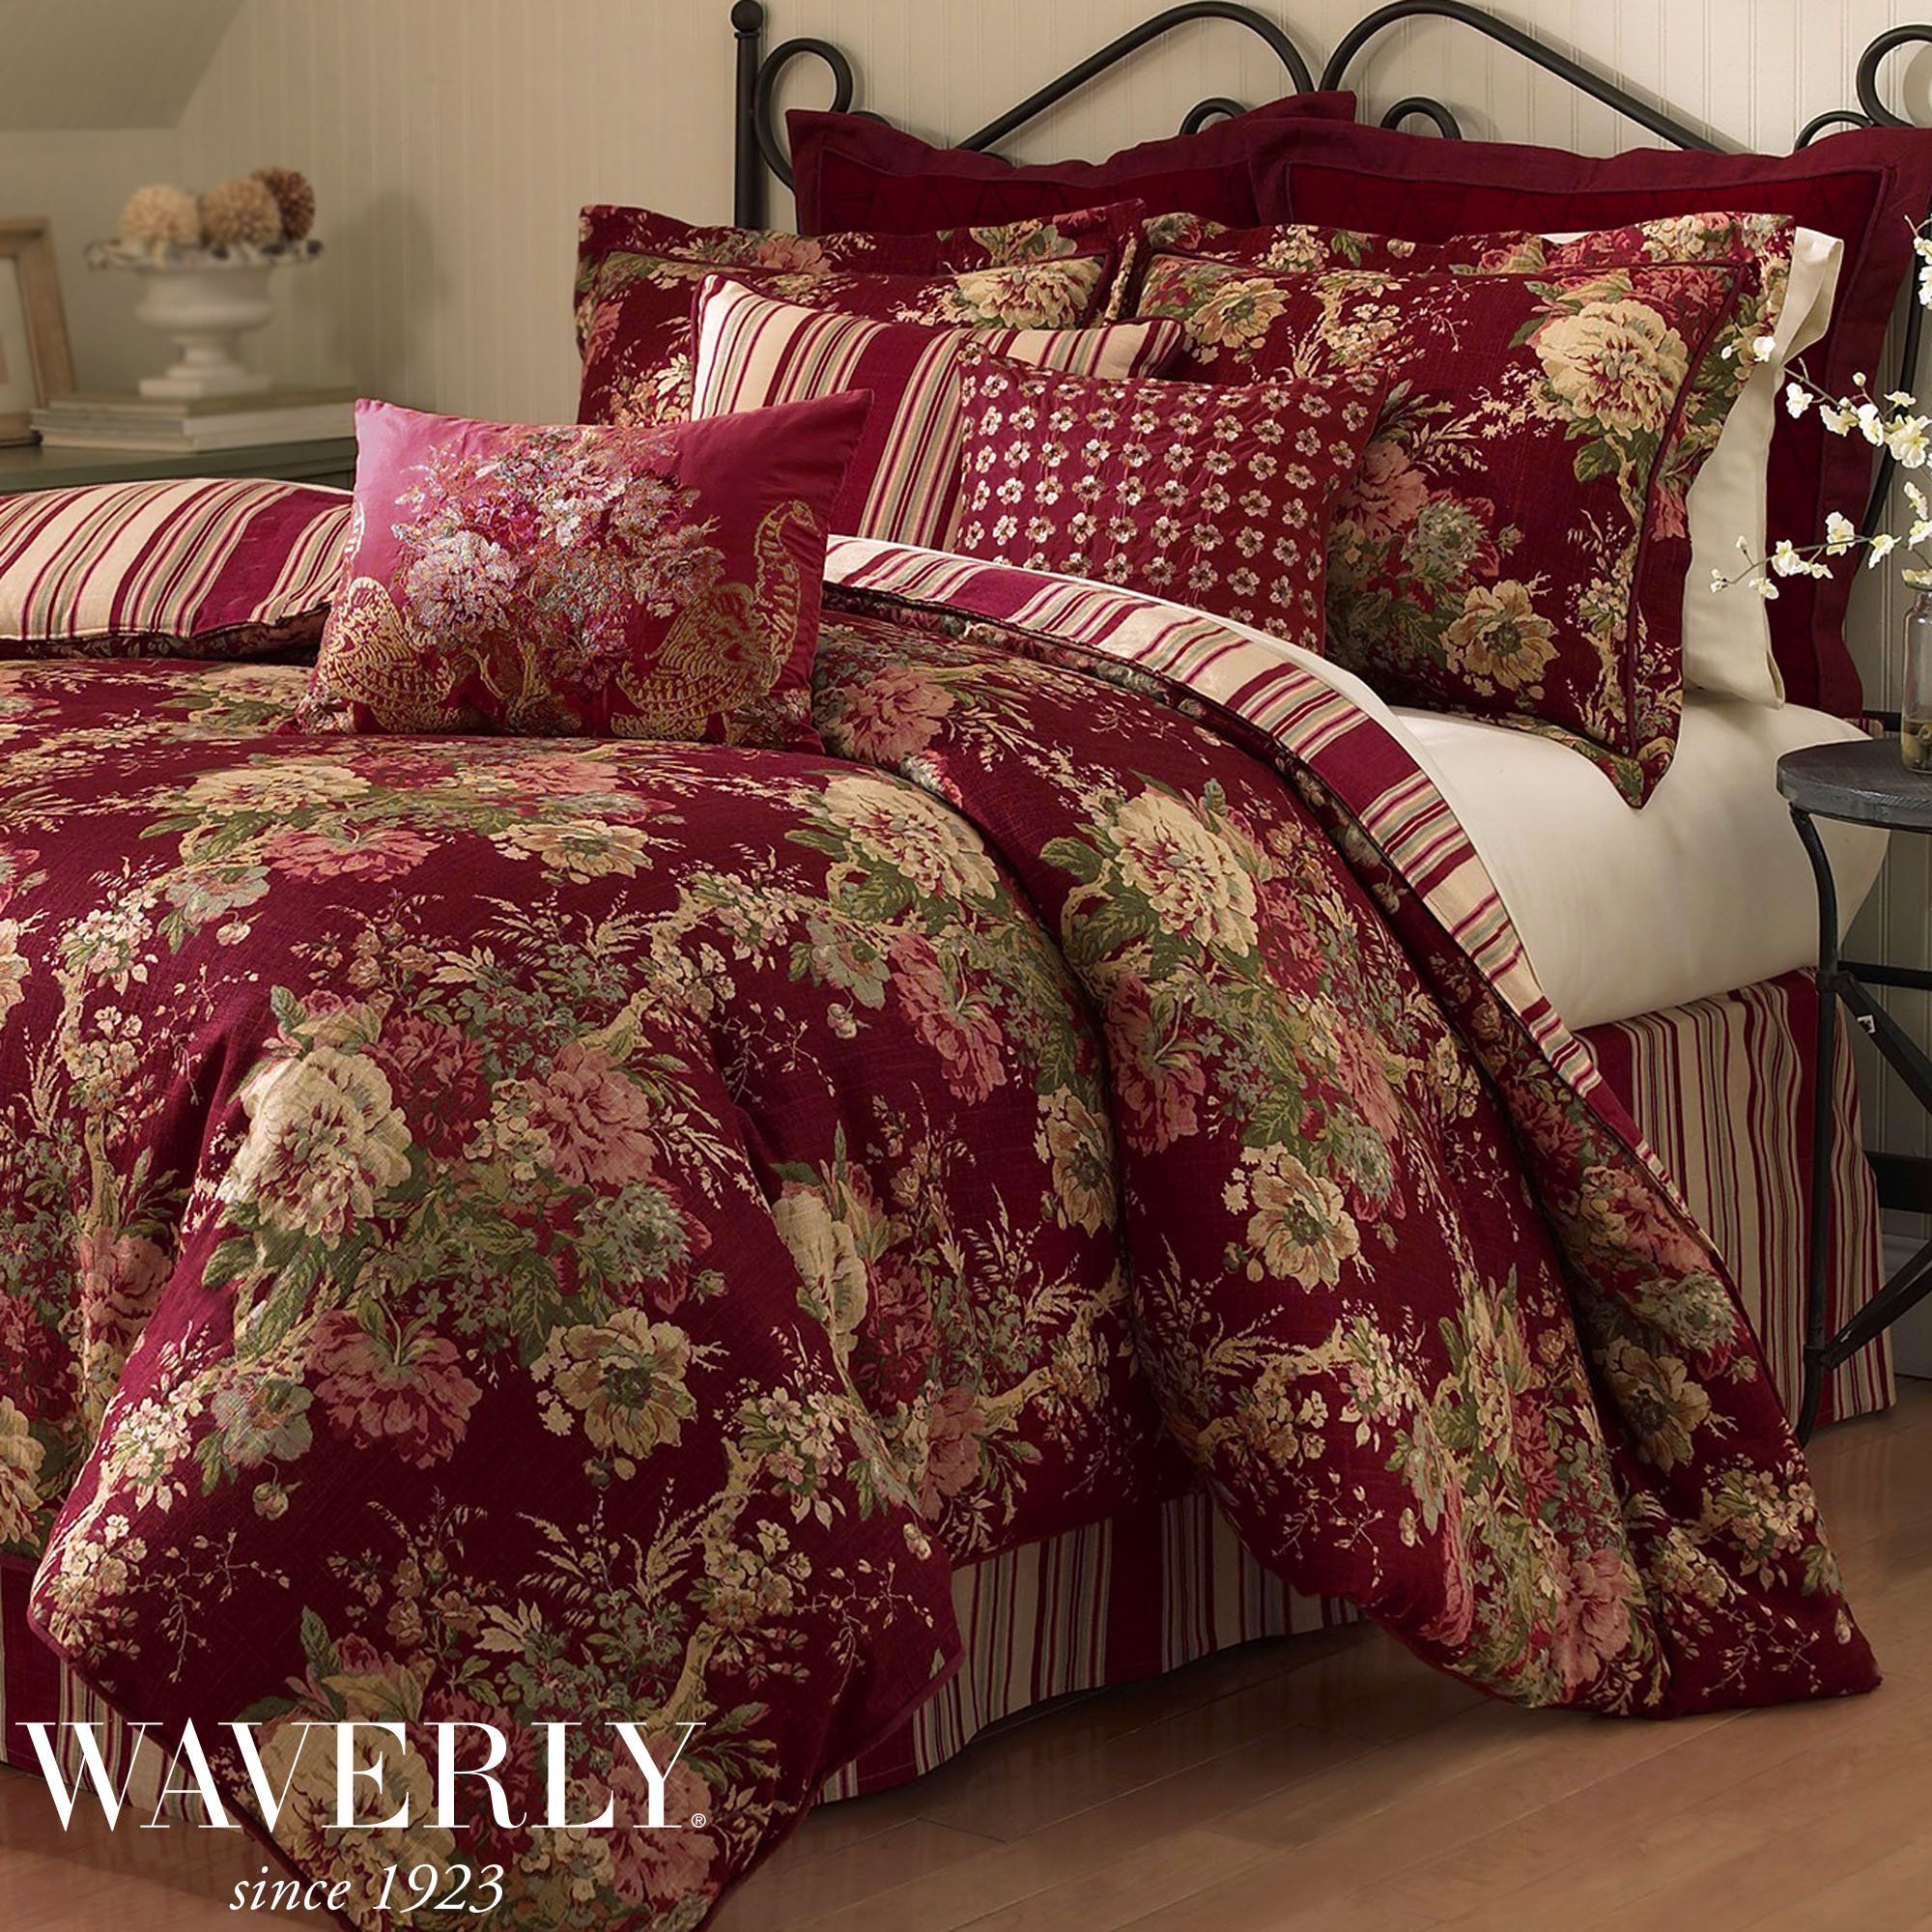 waverly bedspreads and comforters   Home > Ballad Bouquet ...